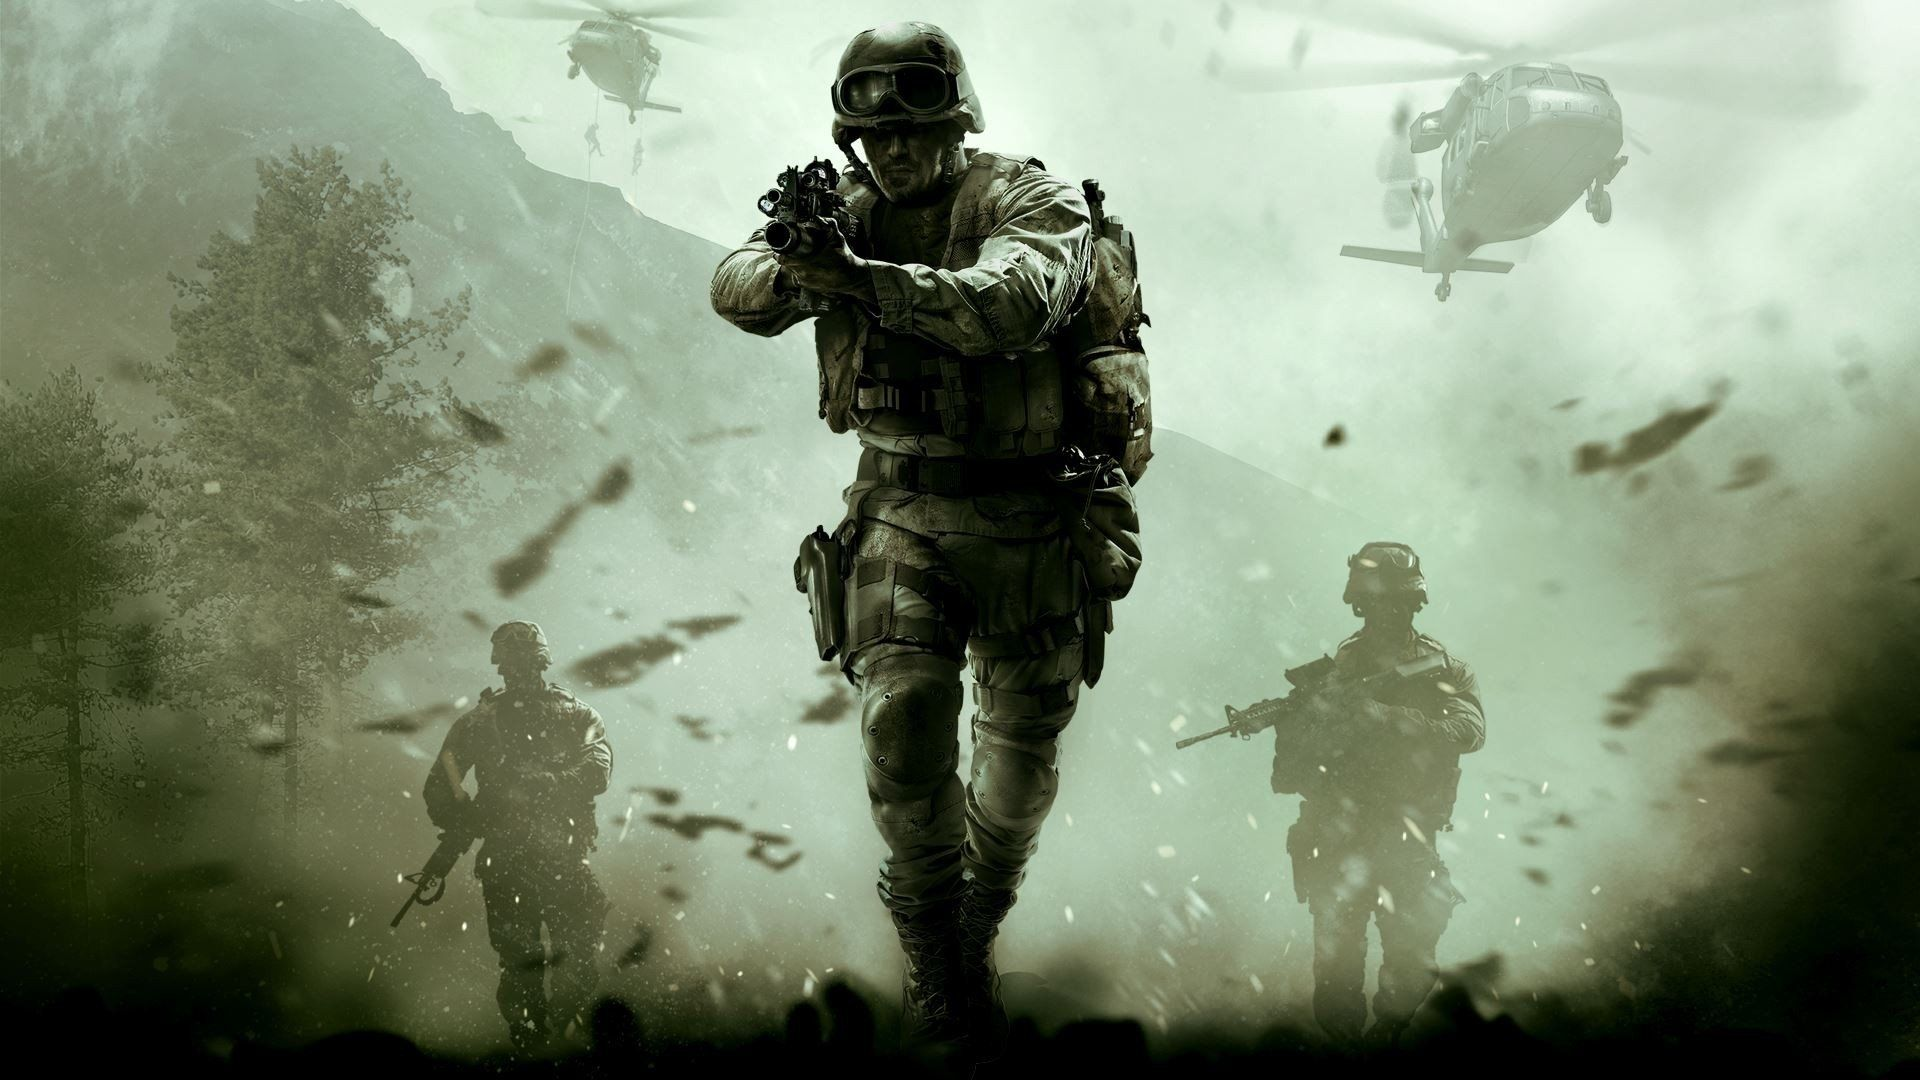 Call Of Duty Modern Warfare Remastered Wallpapers Top Free Call Of Duty Modern Warfare Remastered Backgrounds Wallpaperaccess